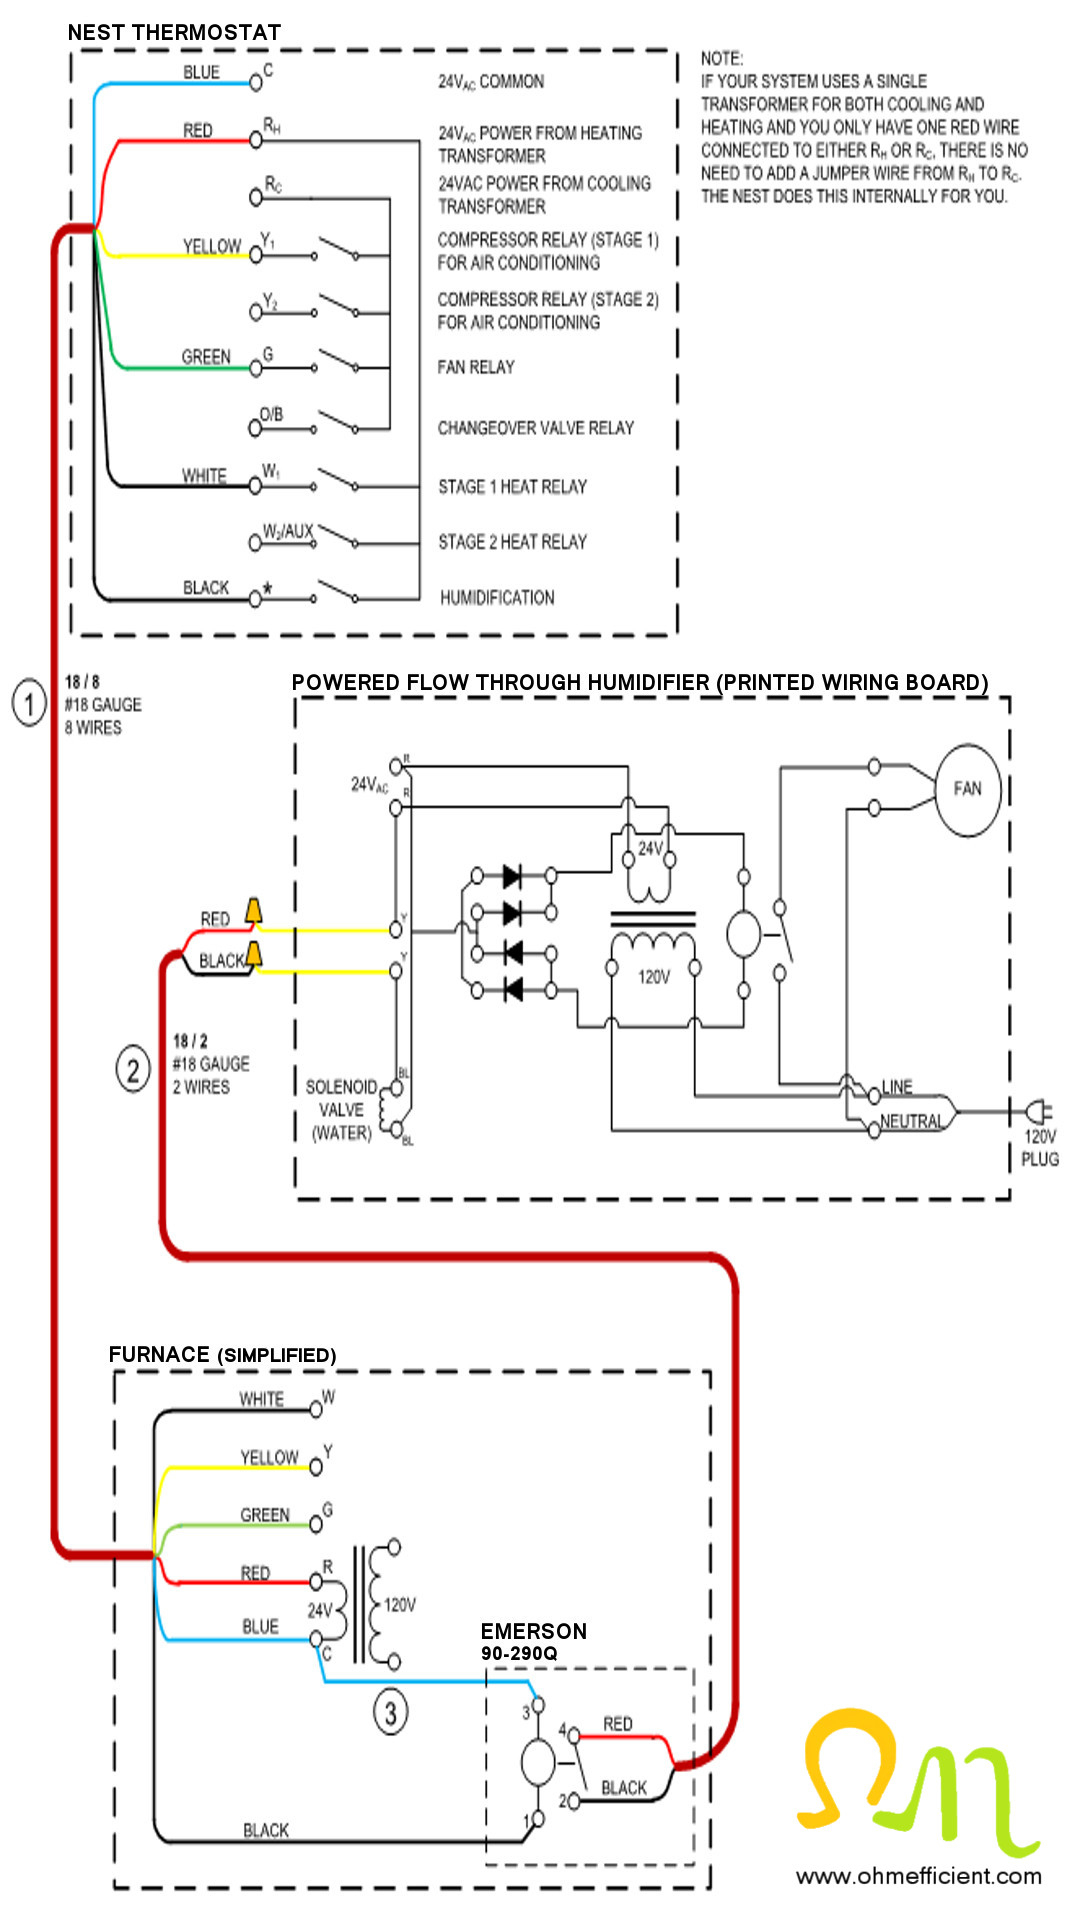 Wiring Diagram For Humidifier - Wiring Diagram Detailed - Aprilaire 700 Nest Wiring Diagram